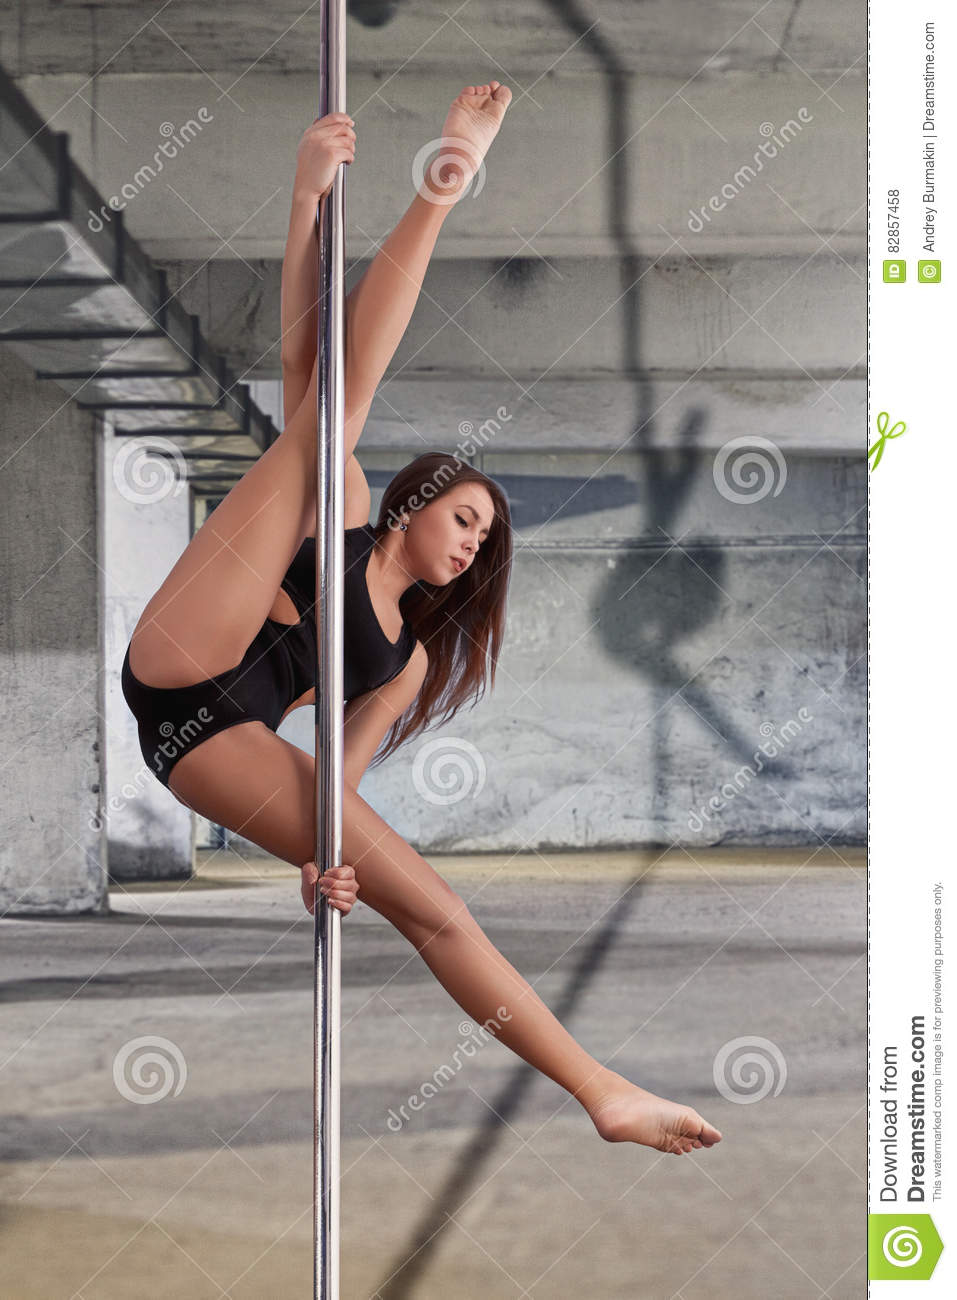 woman performing pole dance shot with wall background stock photo